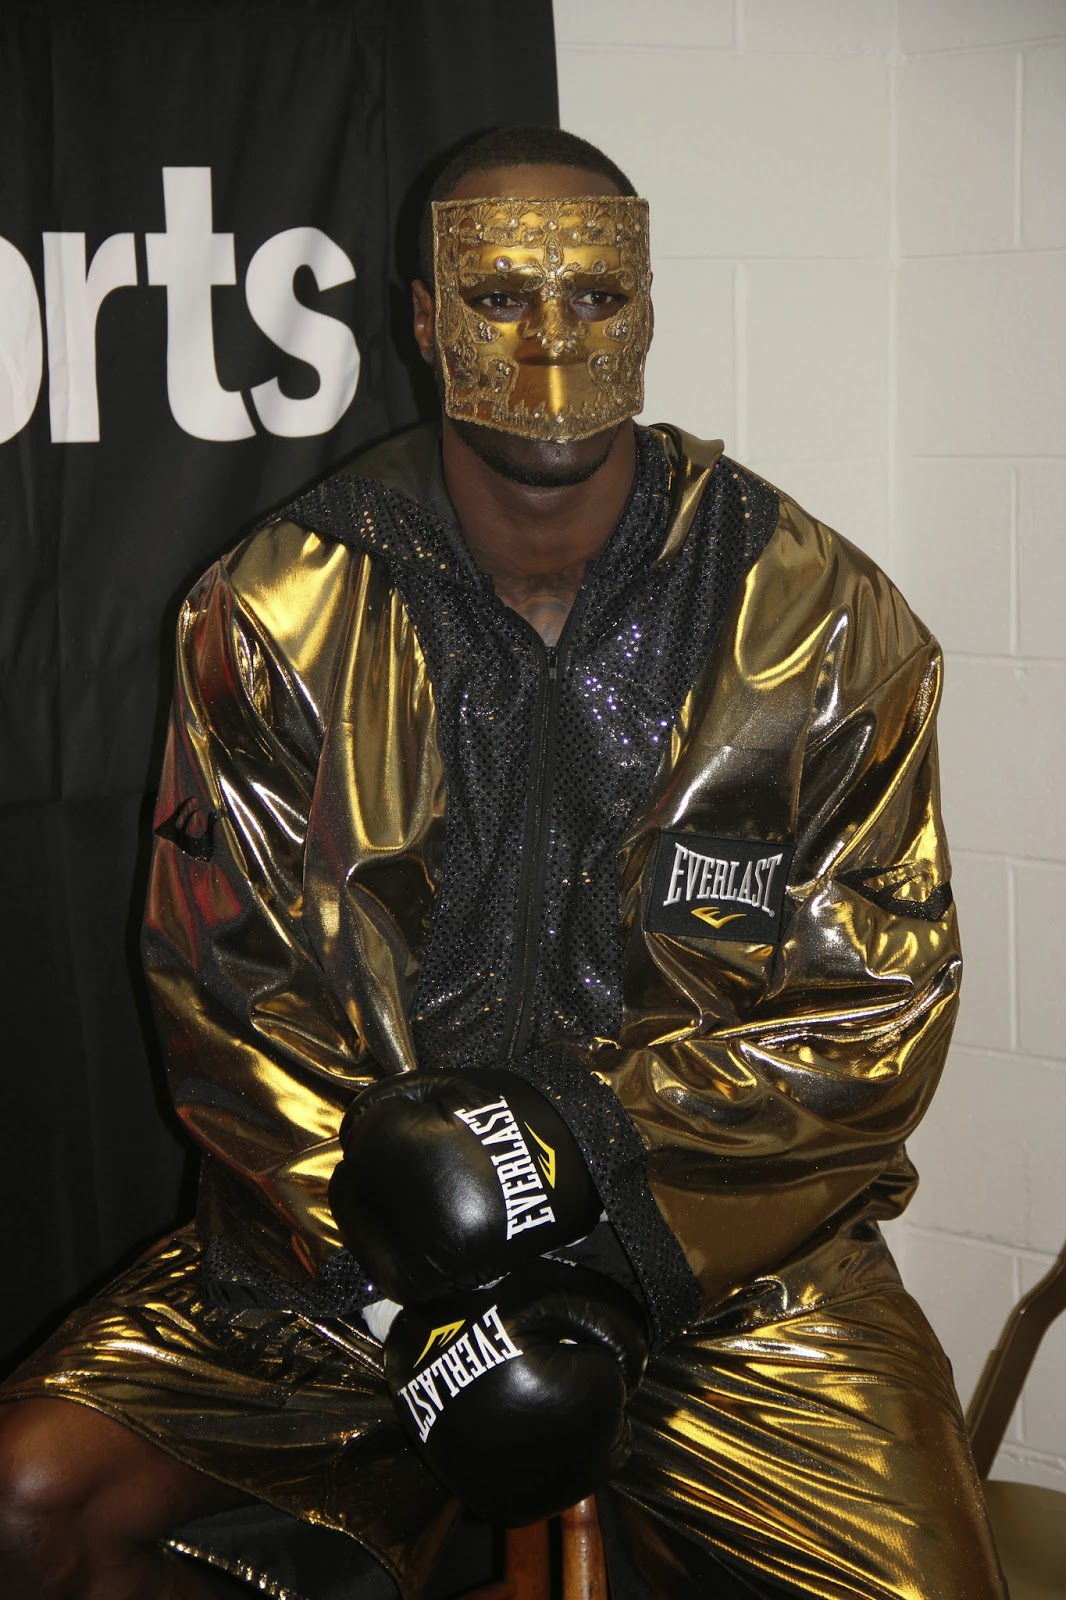 Deontay Wilder Quot The Bronze Bomber Quot Just About To Walk Out